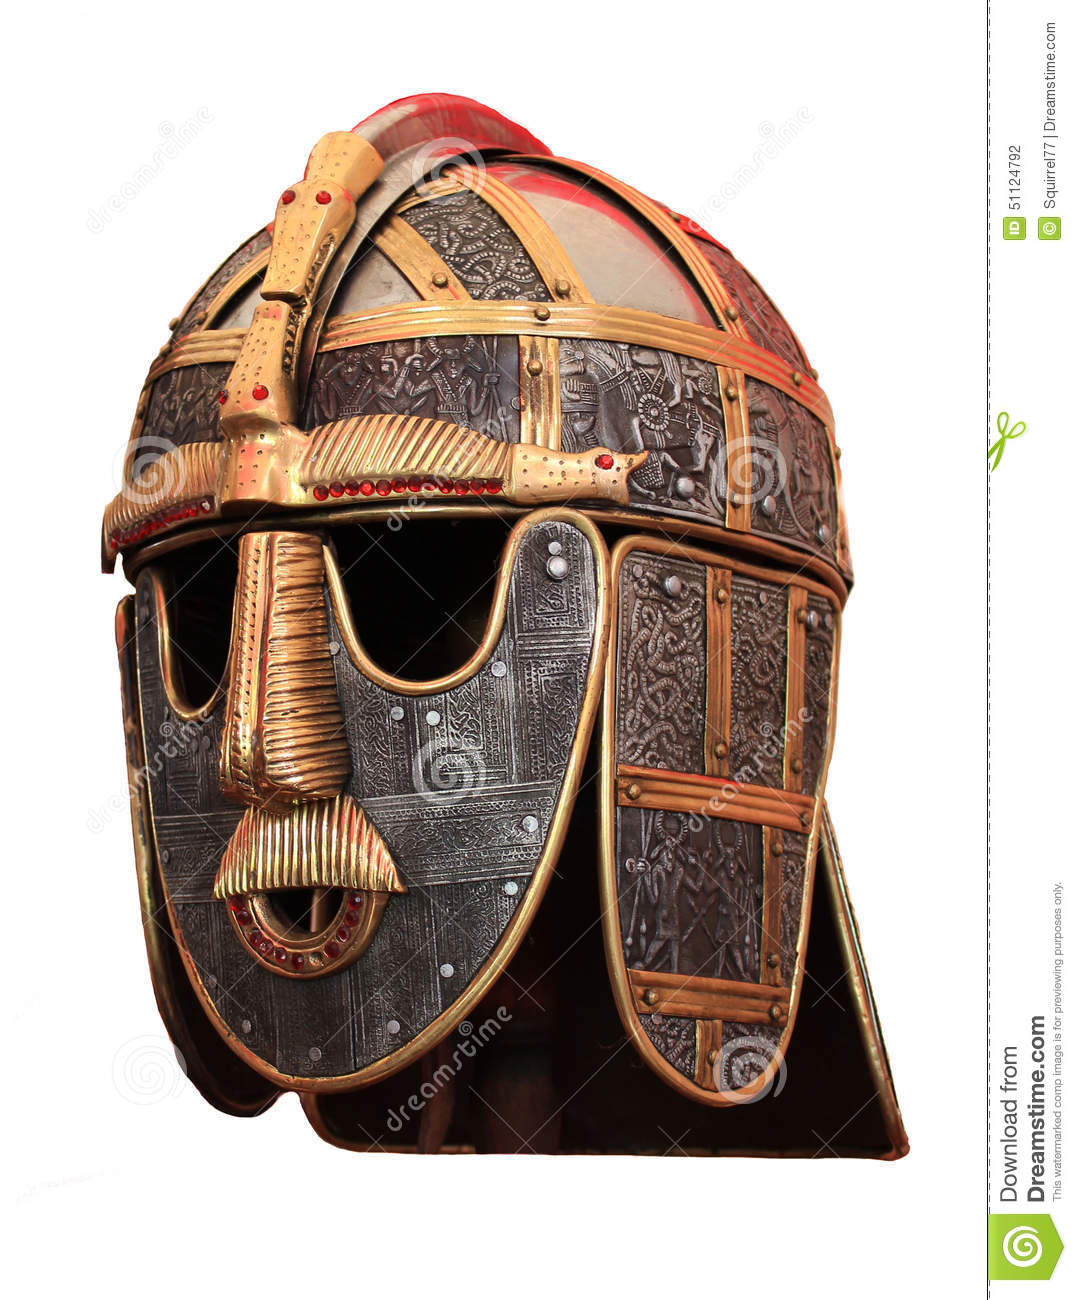 Medieval Head Armour Knights Helmet Stock Photo - Image of ...